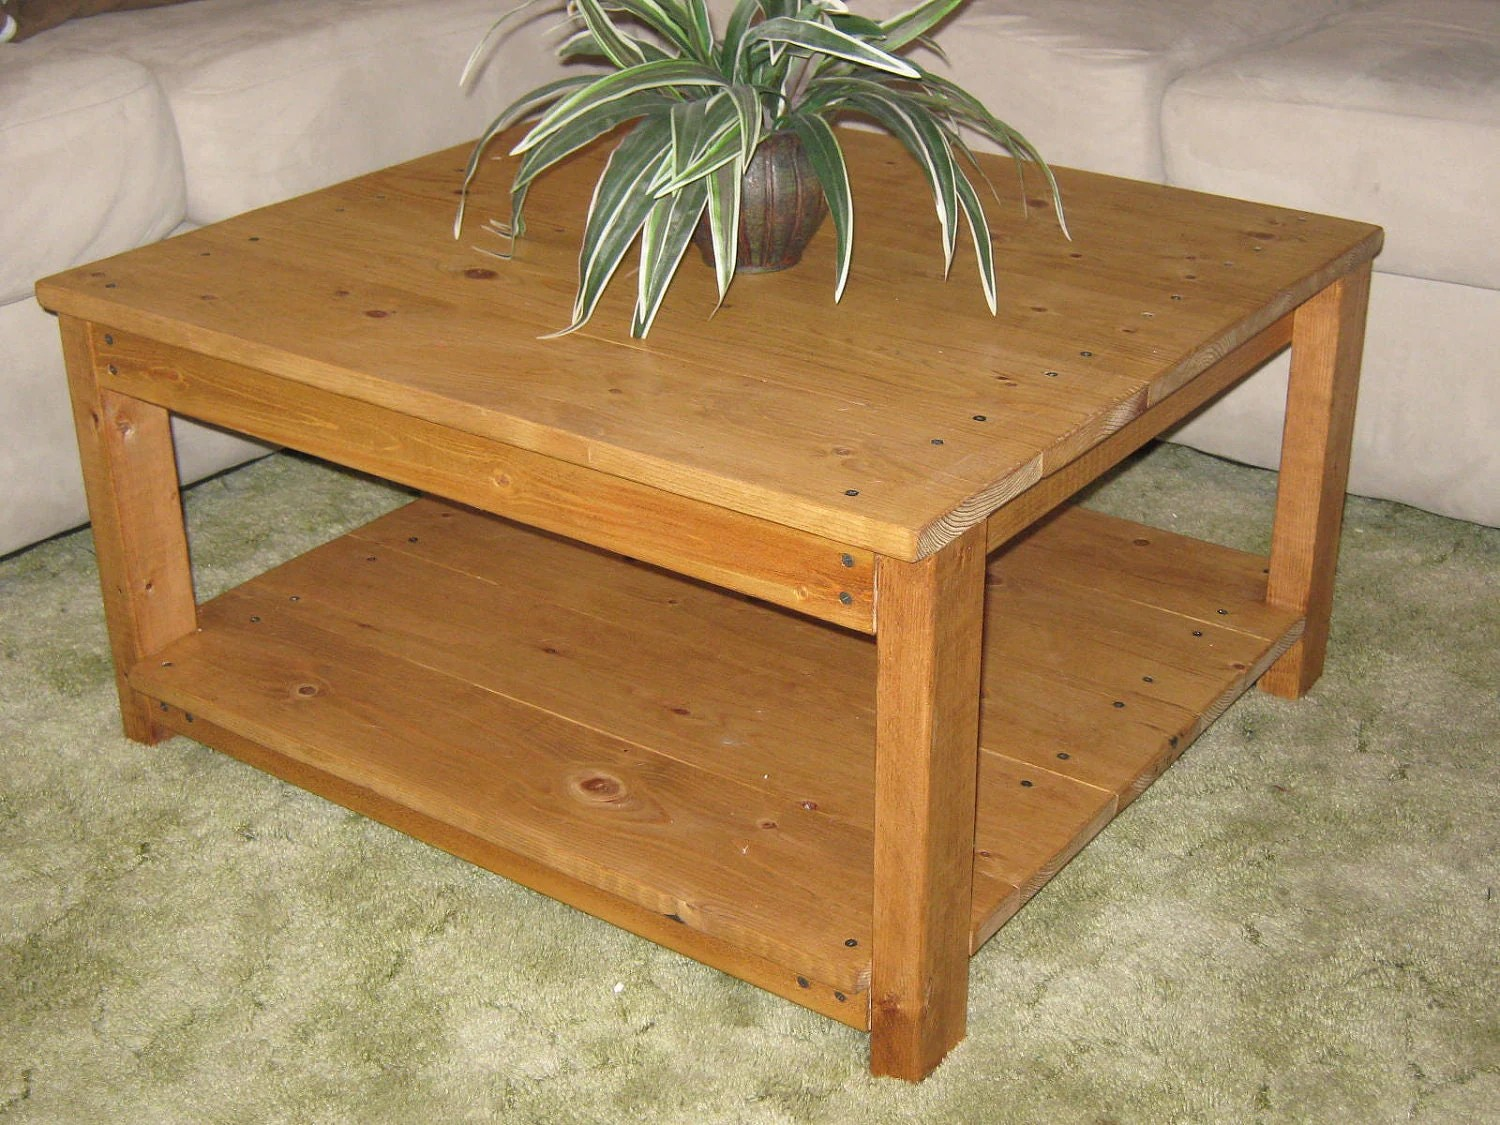 Square Coffee Table Plans Diy Plans To Make Square Wooden Coffee Table By Wingstoshop